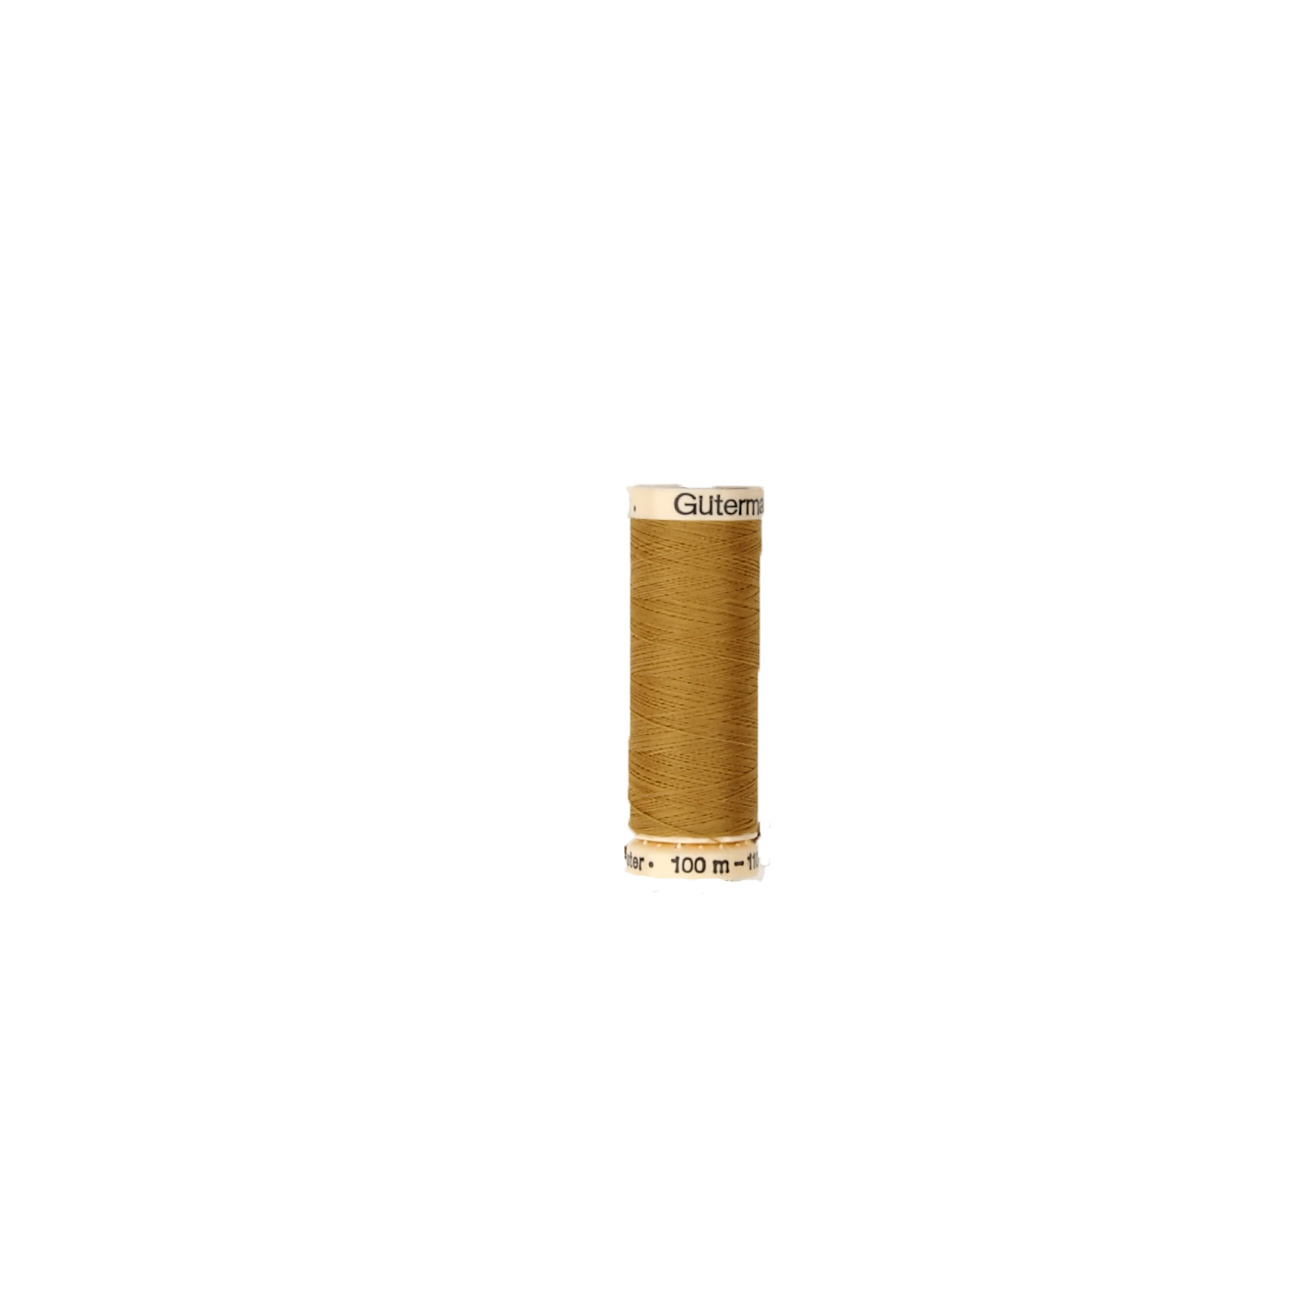 Gutermann Sew-All Thread 110 Yard (865) Gold